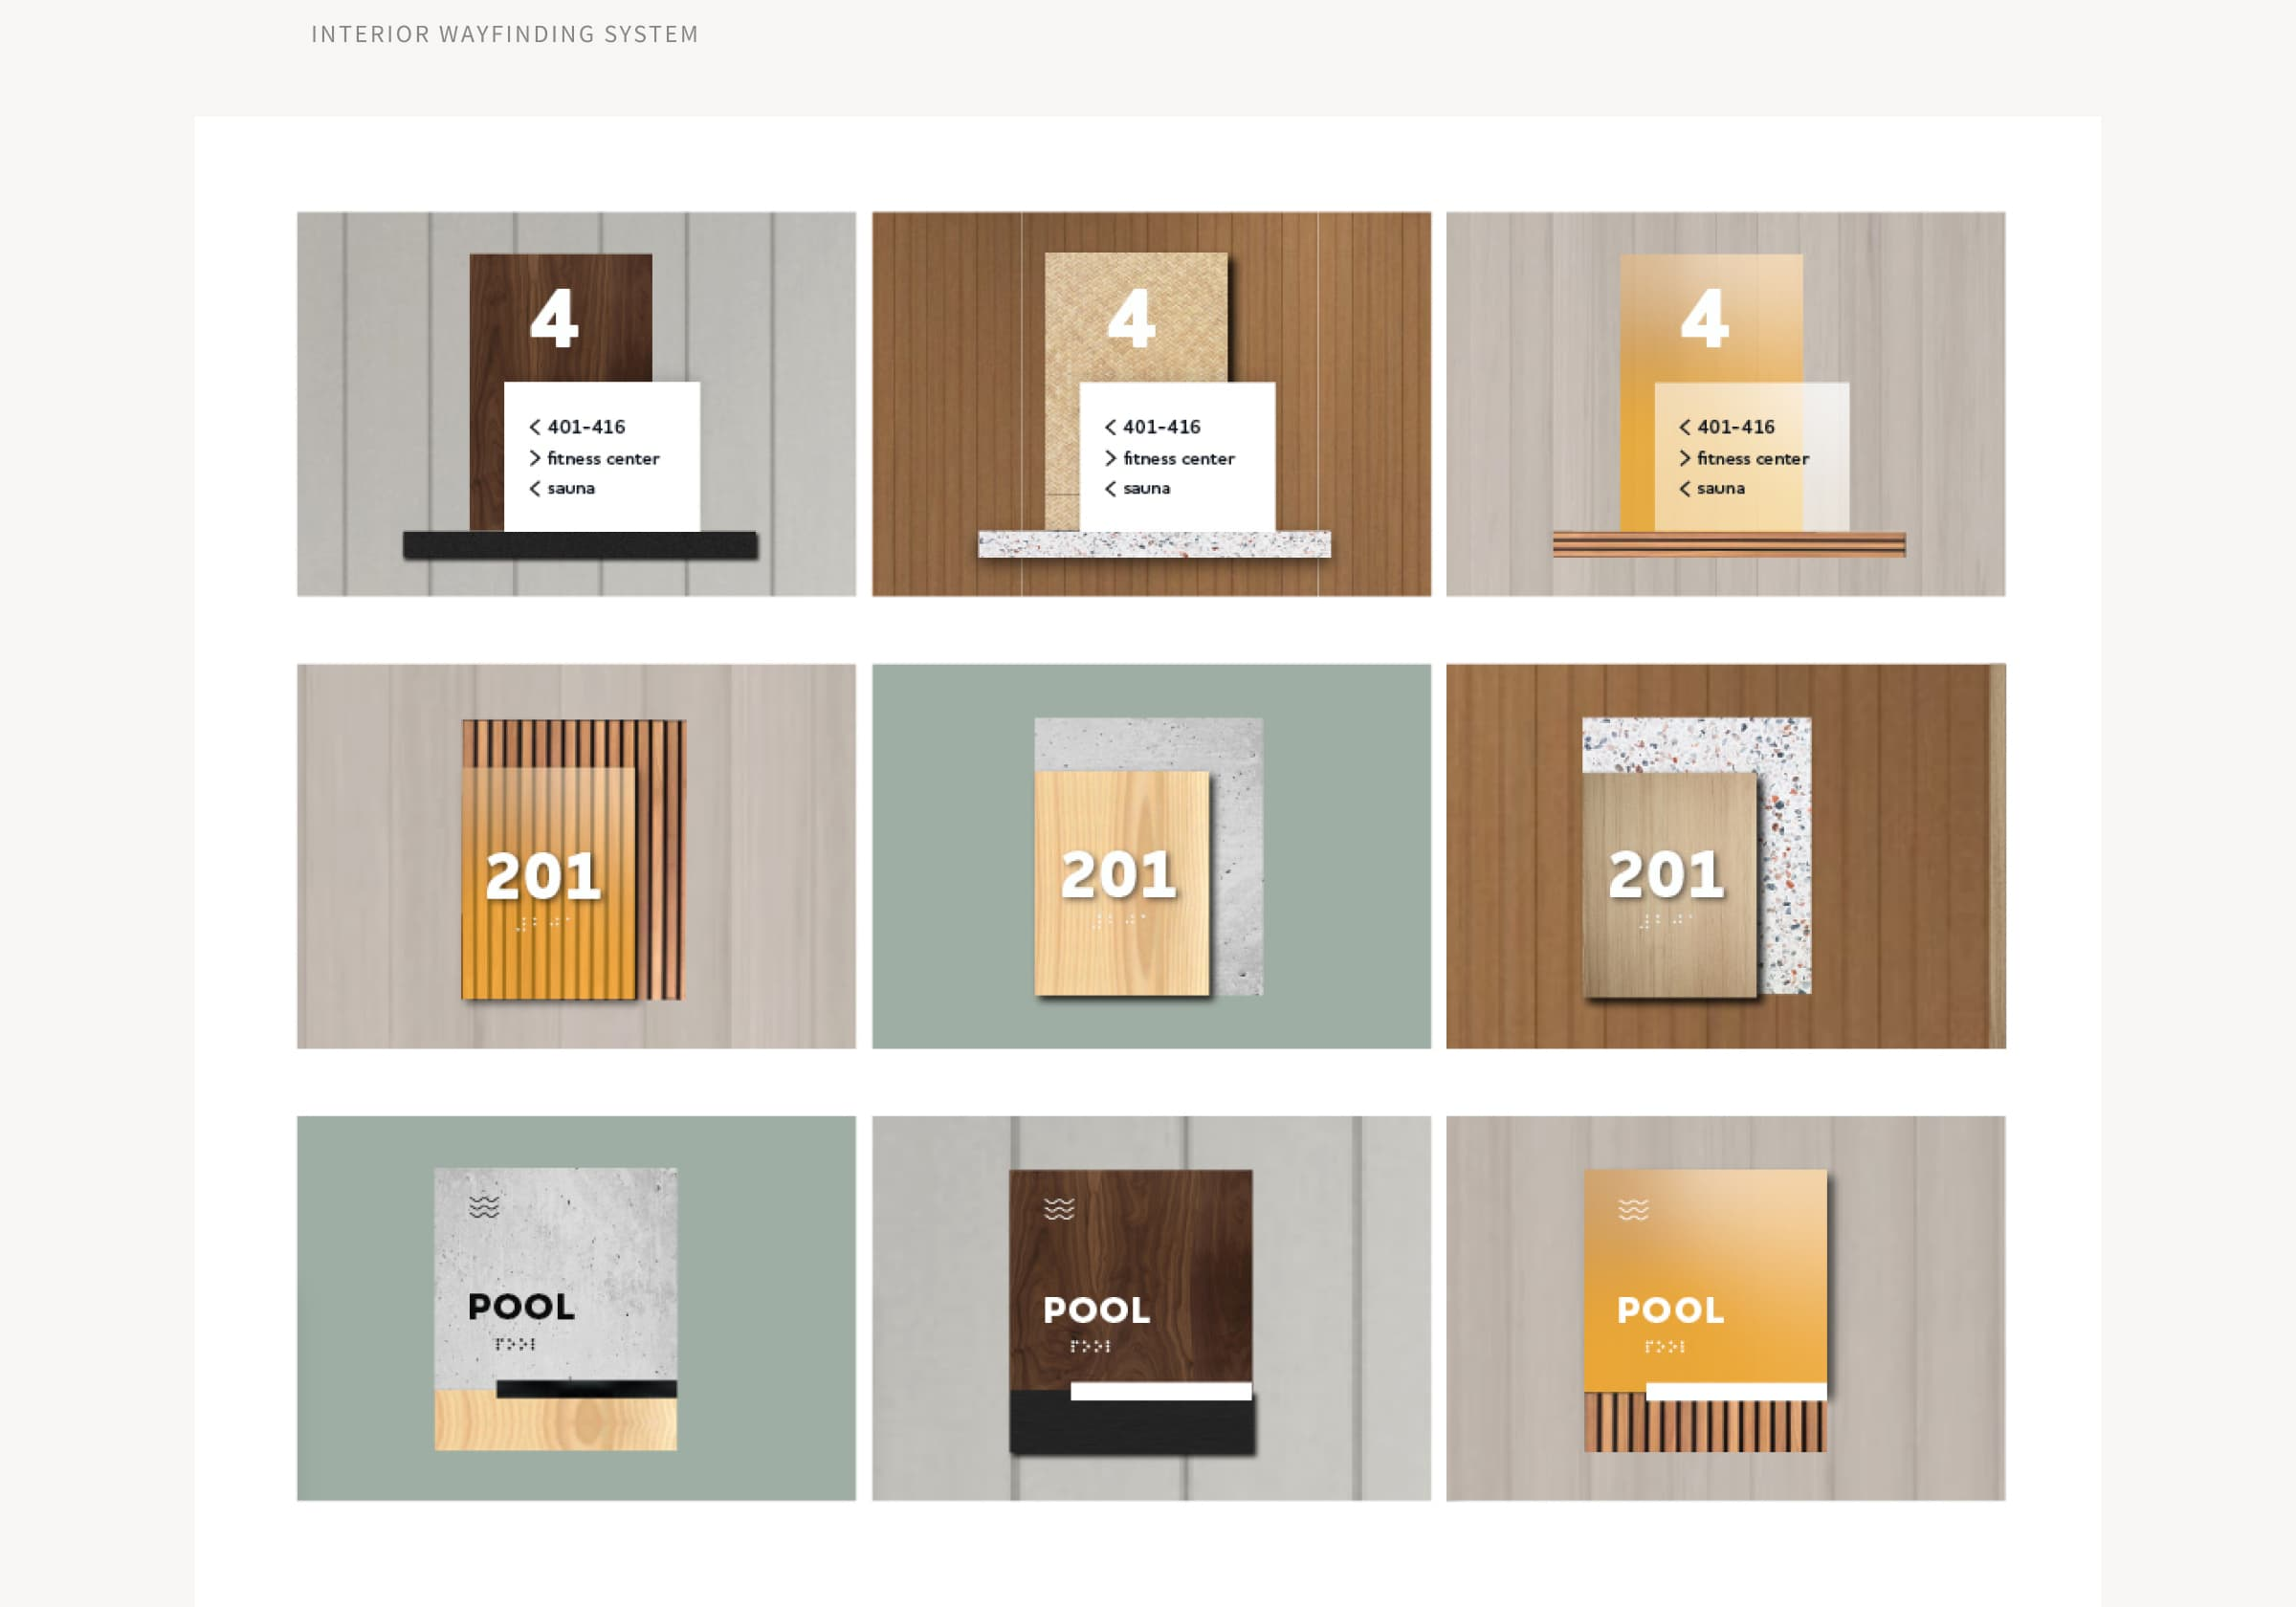 Images of a variety of new Hub interior wayfinding signage, including apartment room numbers, directional signage, and amenity placards.